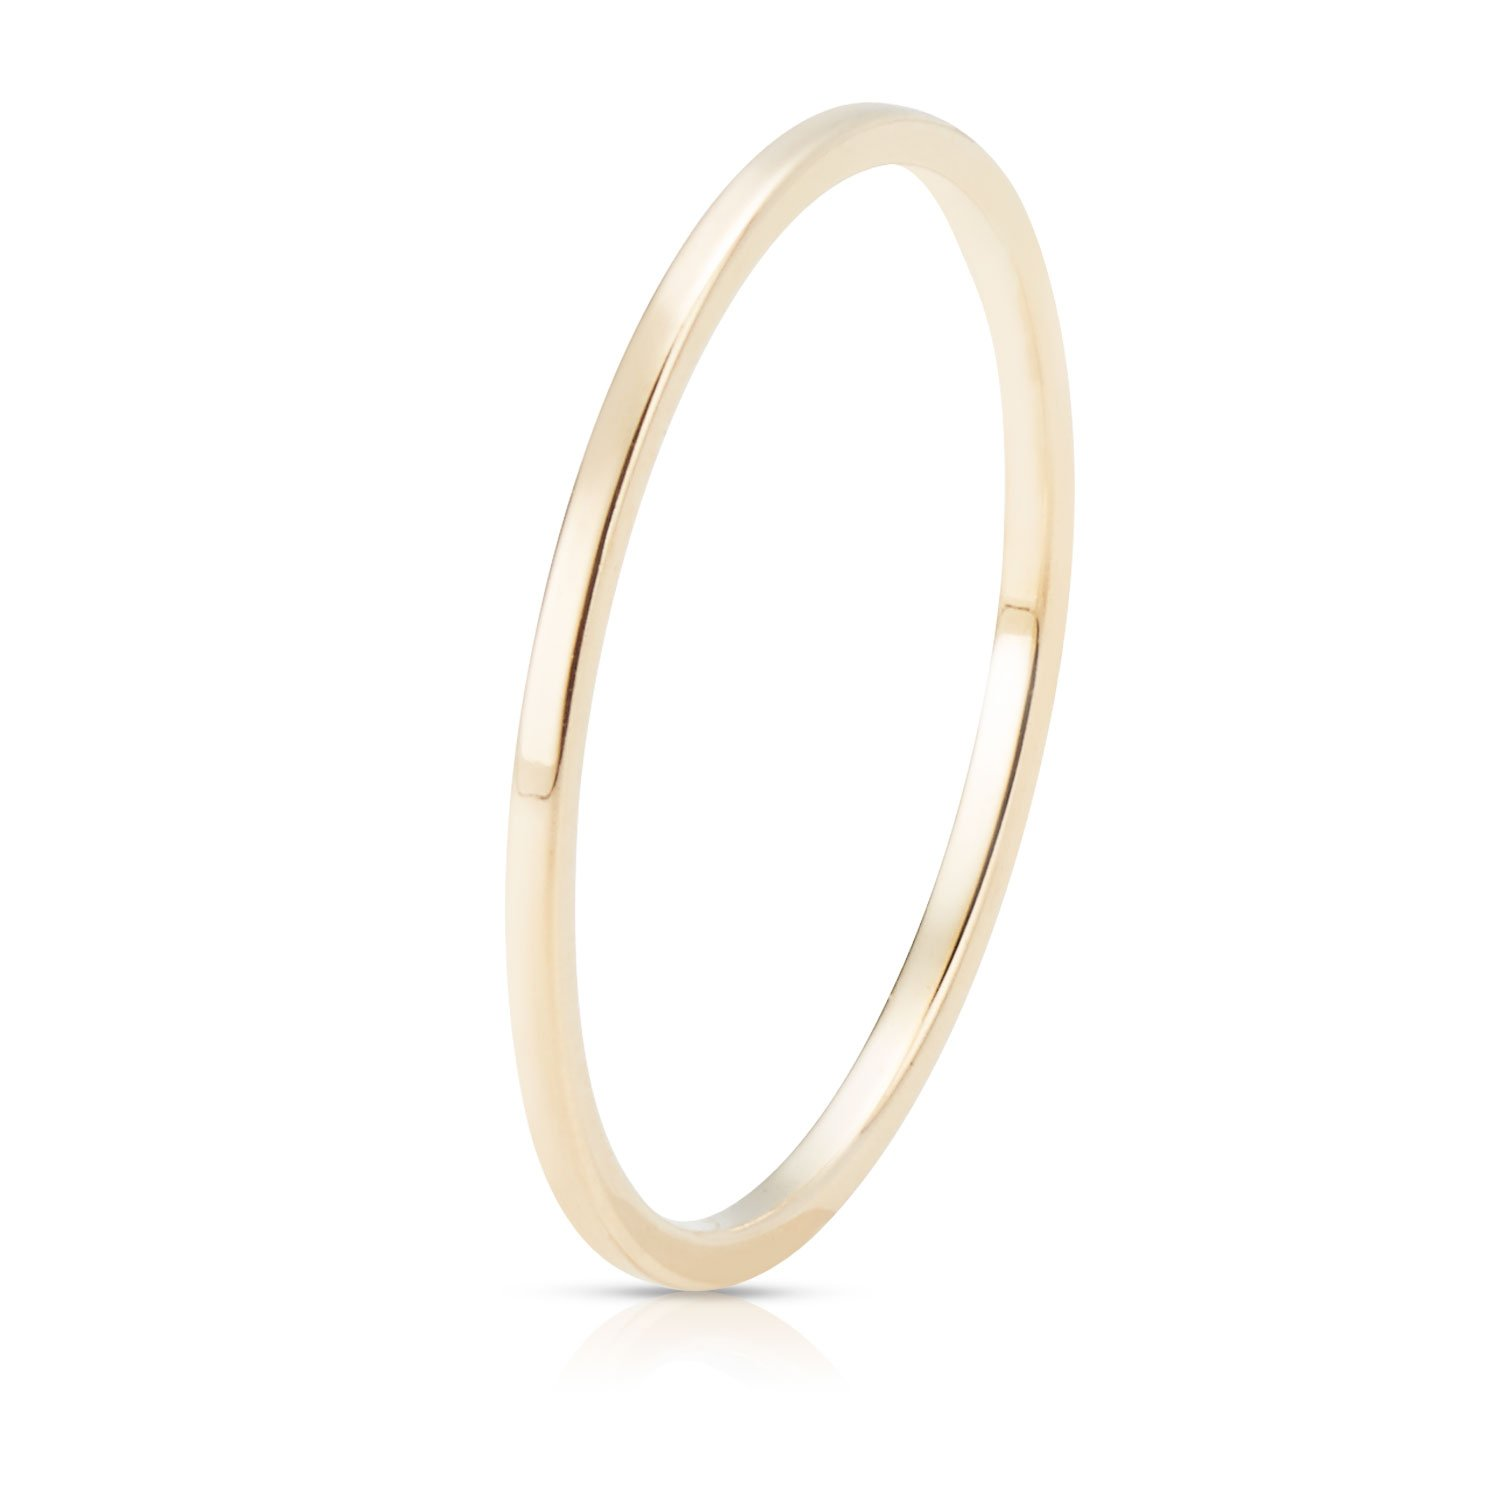 Jewel Connection Real 14K Yellow Gold Petite Stackable Ring with Smooth Square Finish for Women and Girls (6) by Jewel Connection (Image #2)